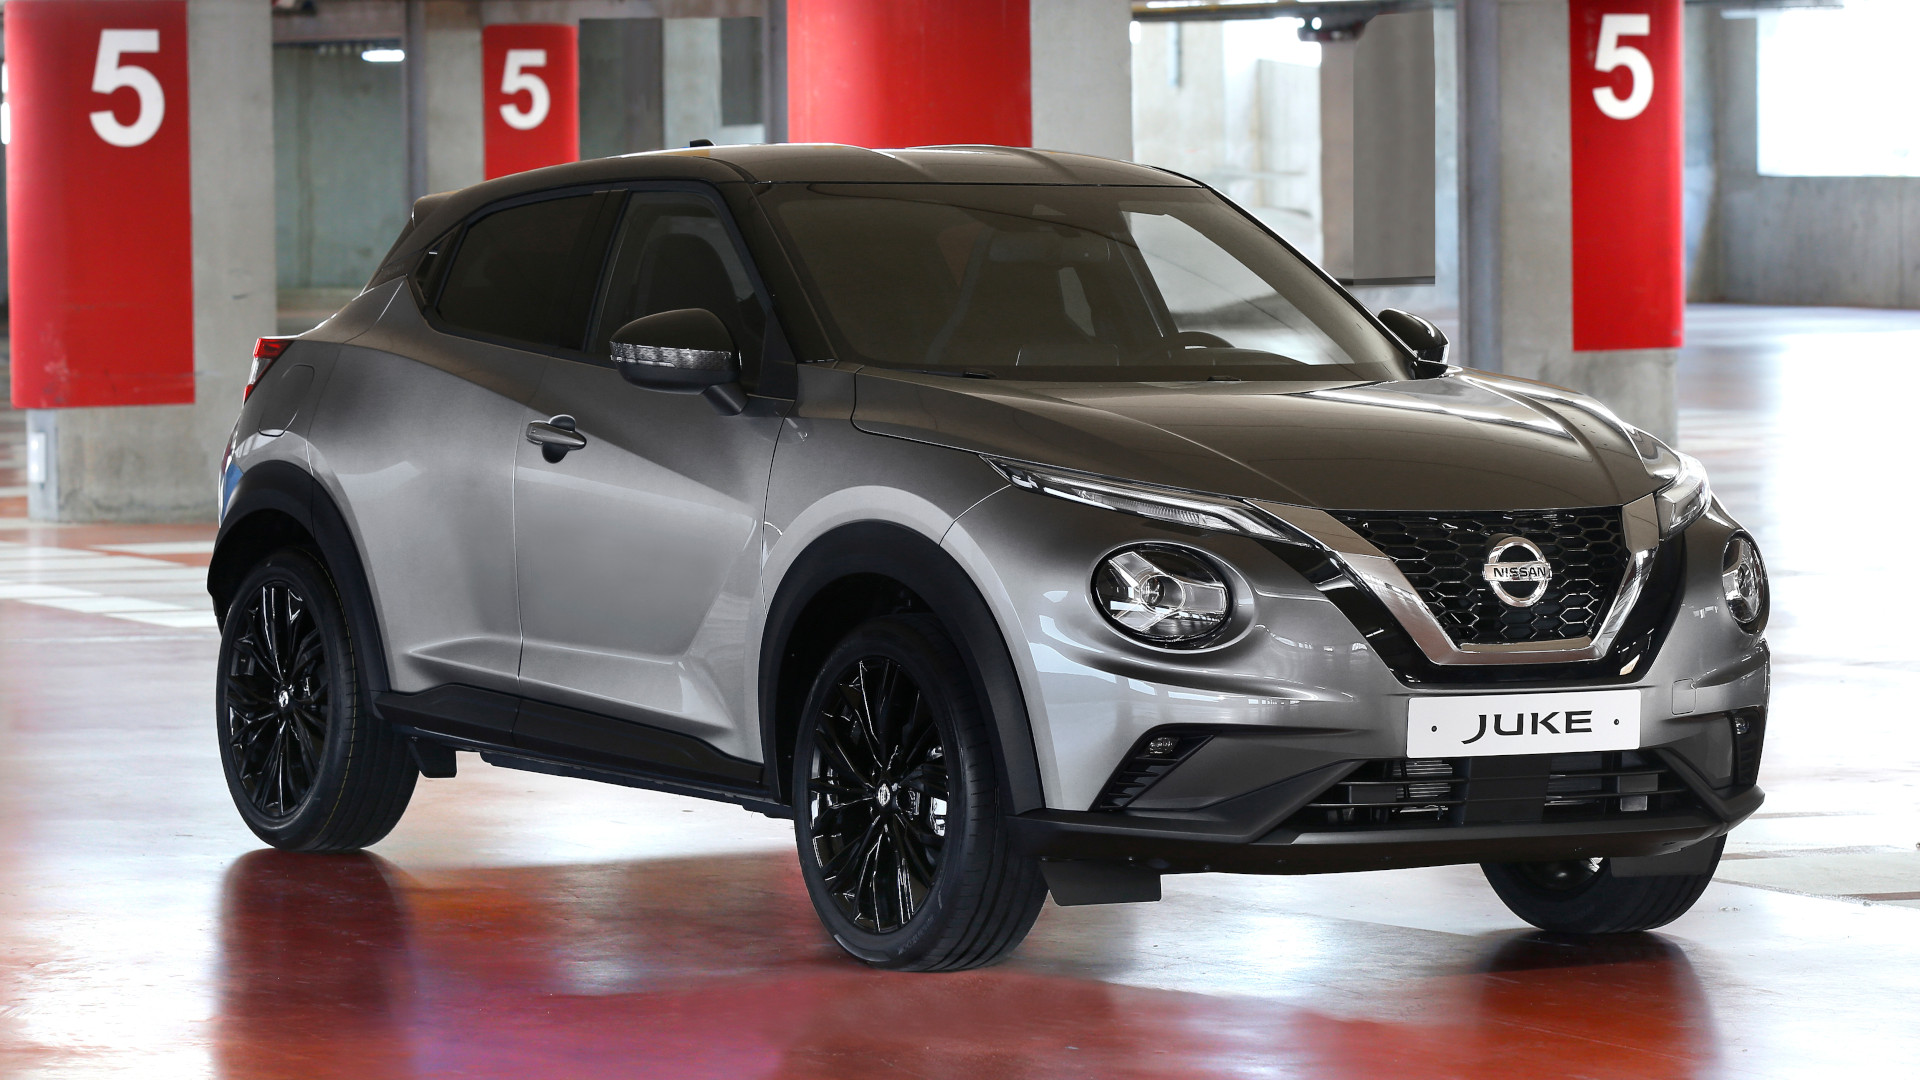 Nissan Juke Enigma - Front Feature